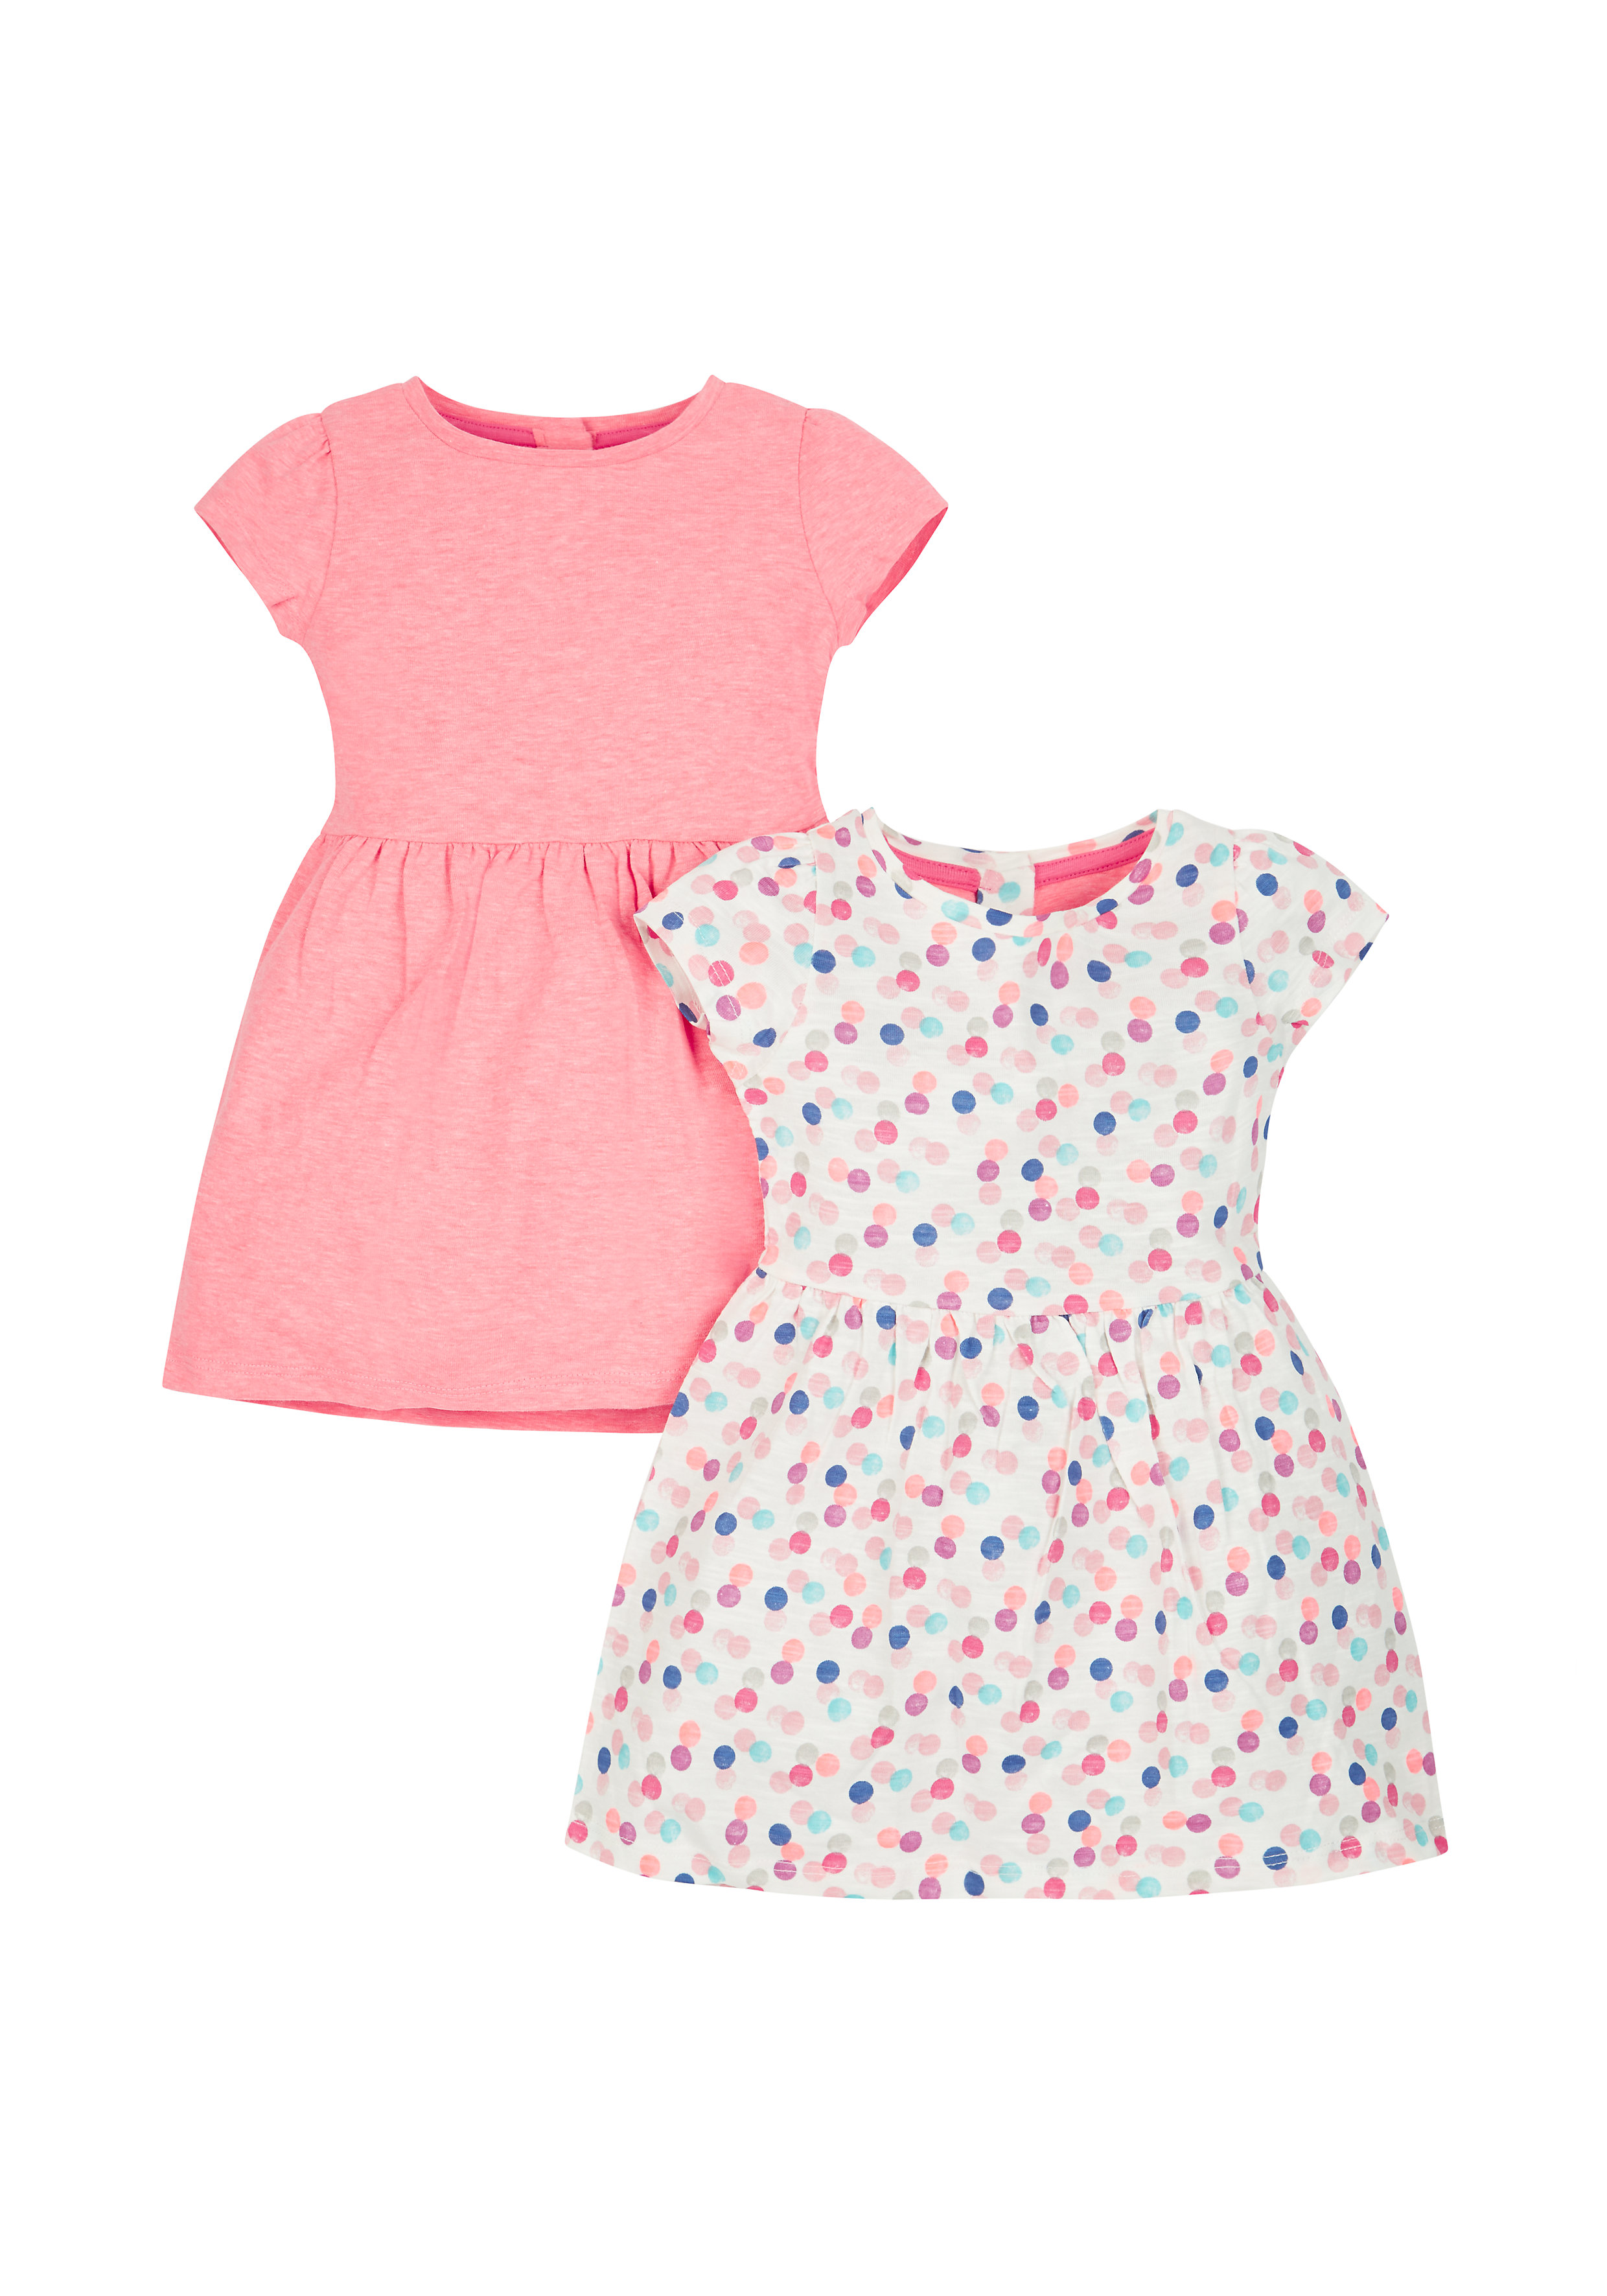 Mothercare | Girls Half Sleeves Dress Spot Print - Pack Of 2 - Multicolor